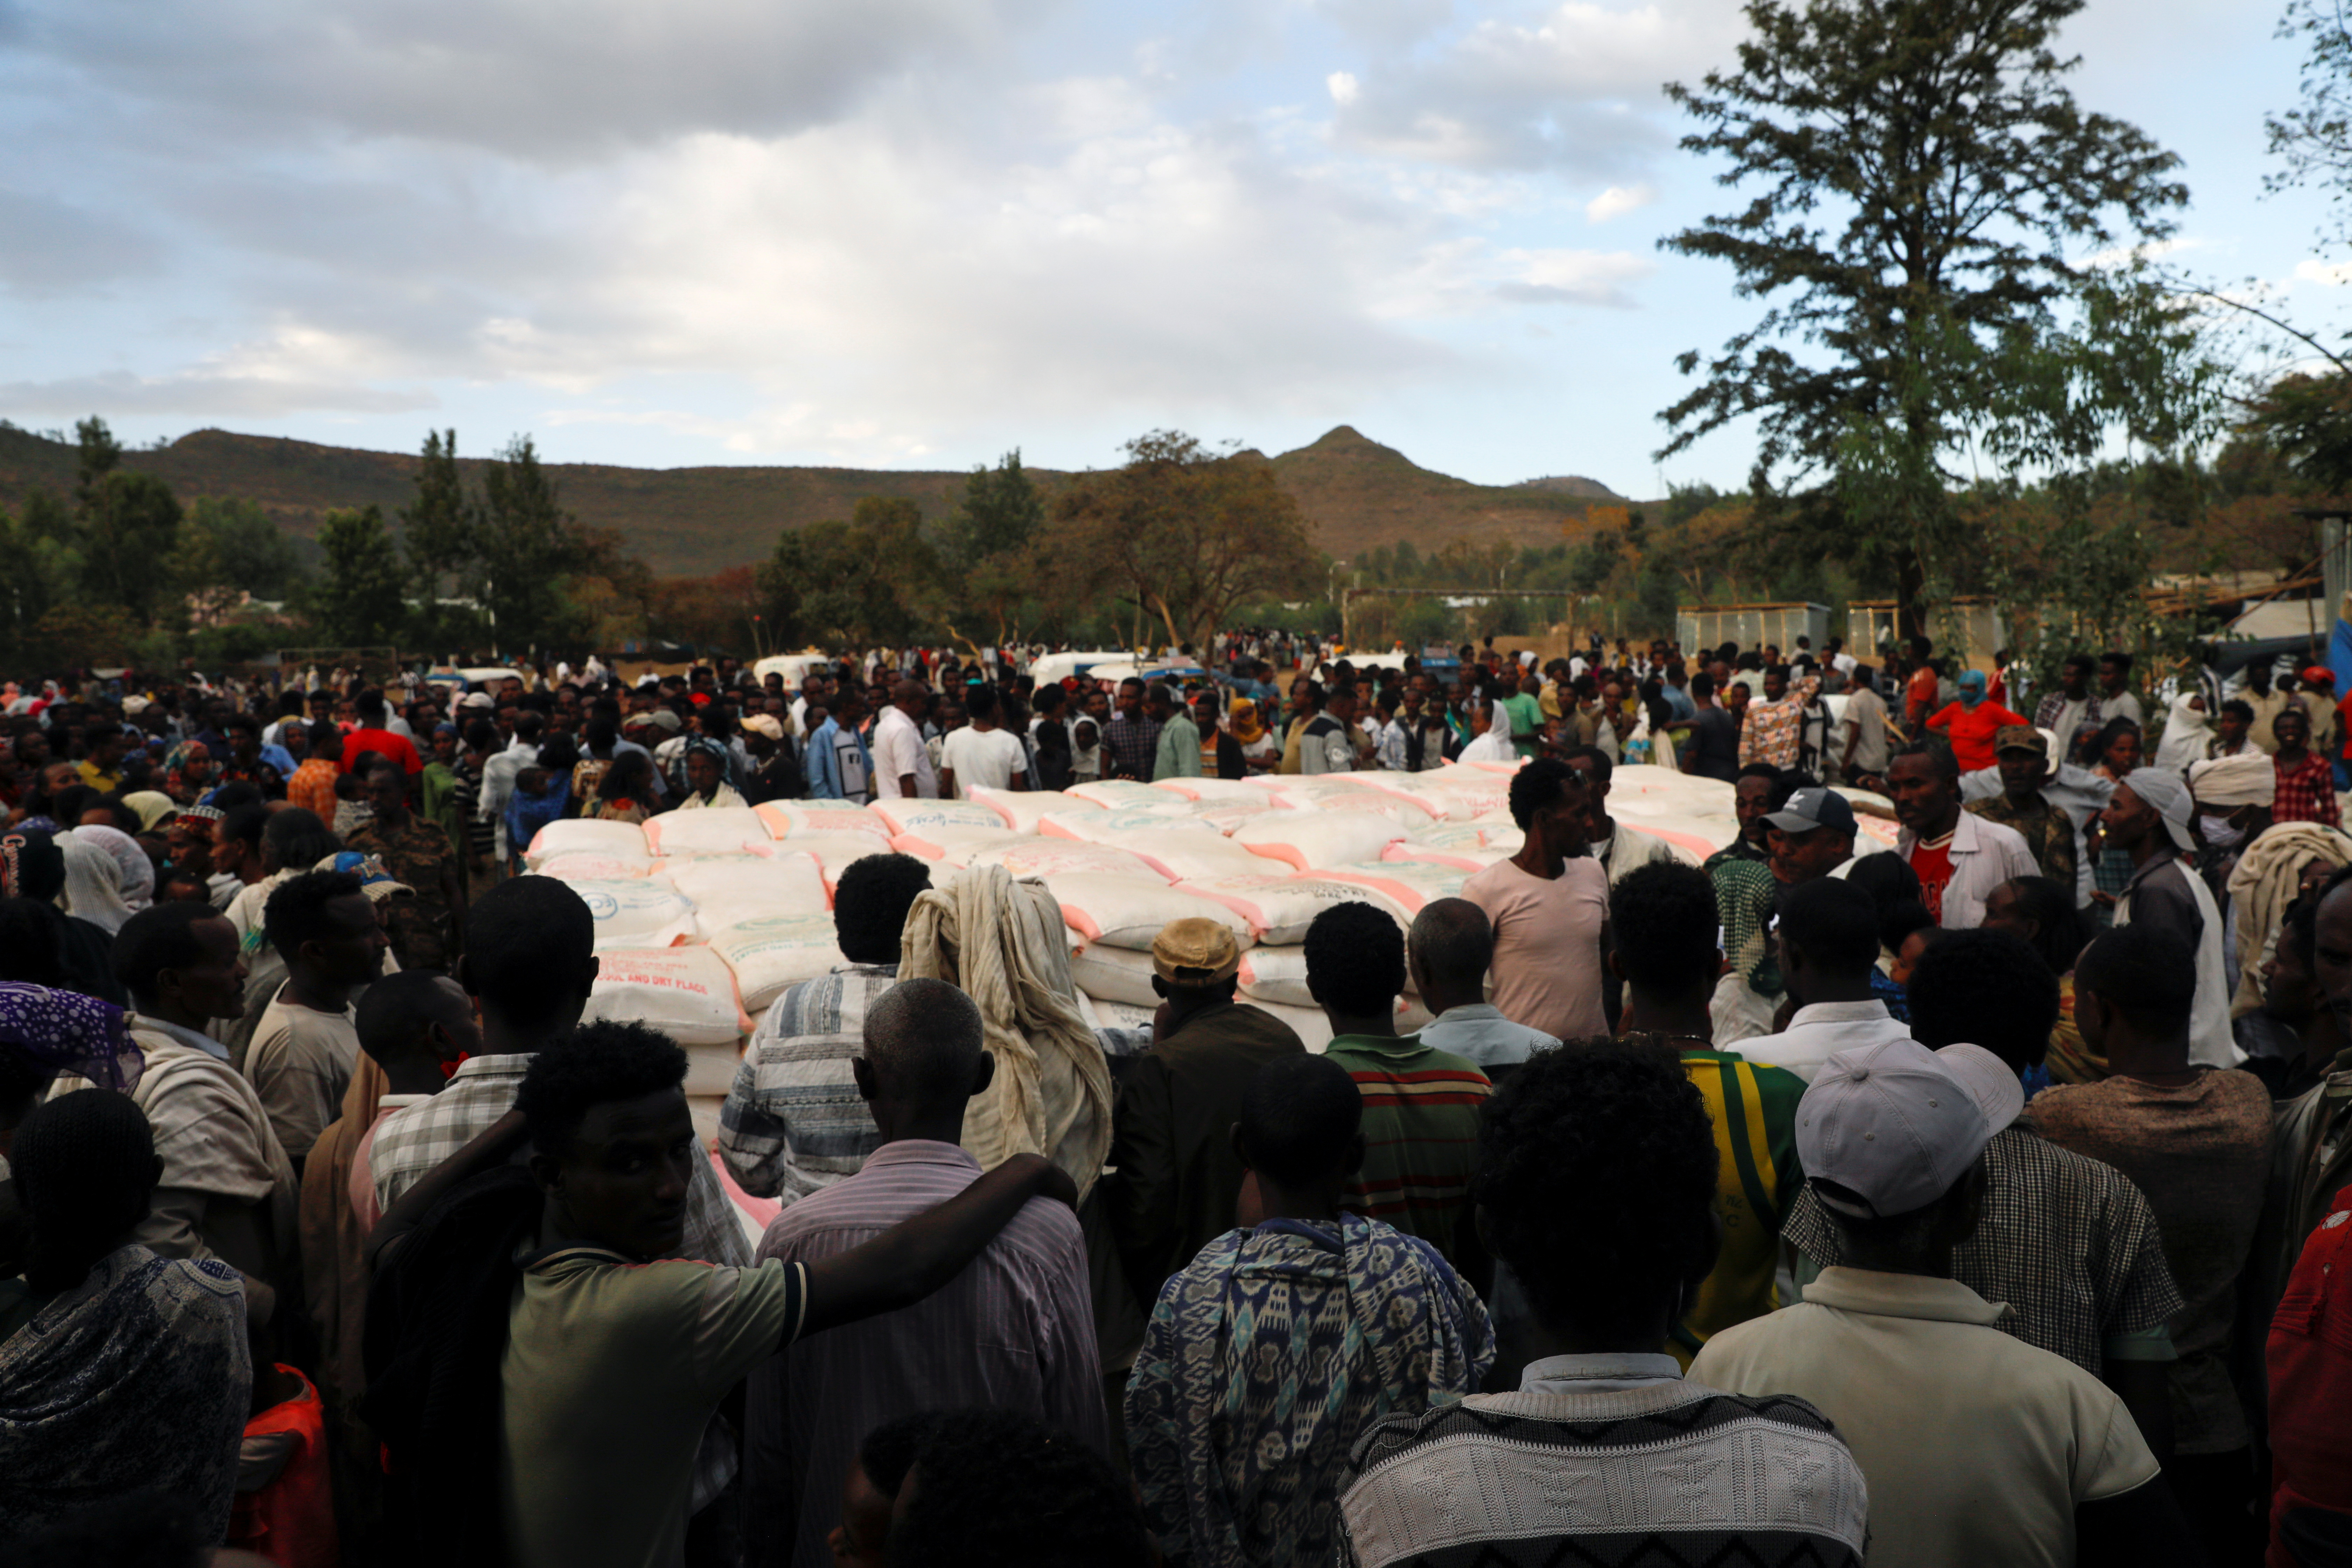 People stand in line to receive food donations, at the Tsehaye primary school, which was turned into a temporary shelter for people displaced by conflict, in the town of Shire, Tigray region, Ethiopia, March 15, 2021. Picture taken March 15, 2021.    REUTERS/Baz Ratner/File Photo